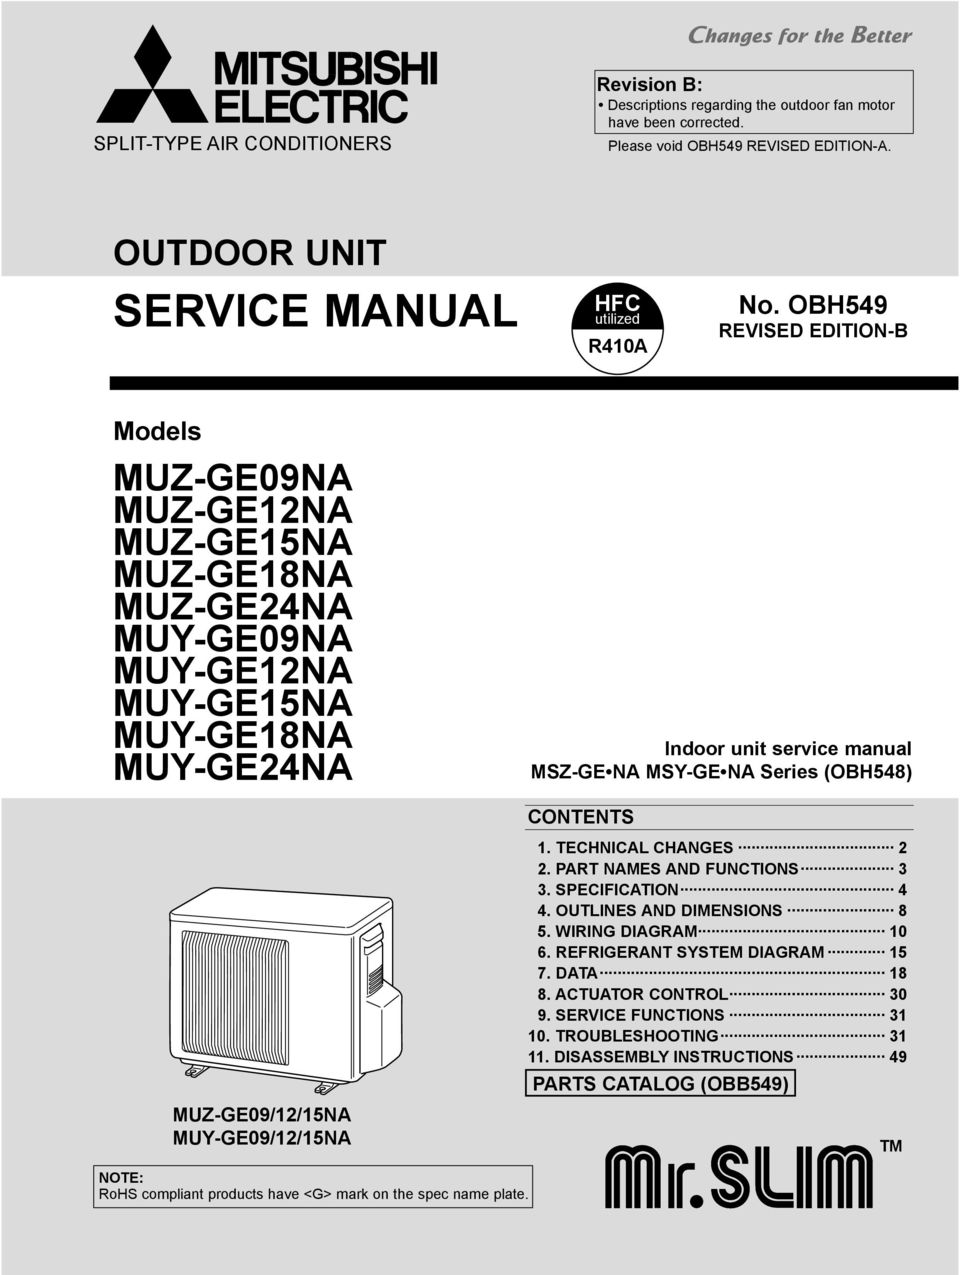 Mitsubishi R410a Wiring Diagram Excellent Electrical 4m40 Service Manual Muz Ge09na Ge12na Ge15na Ge18na Rh Docplayer Net Diagrams Tractor D2000ii Engine Timing